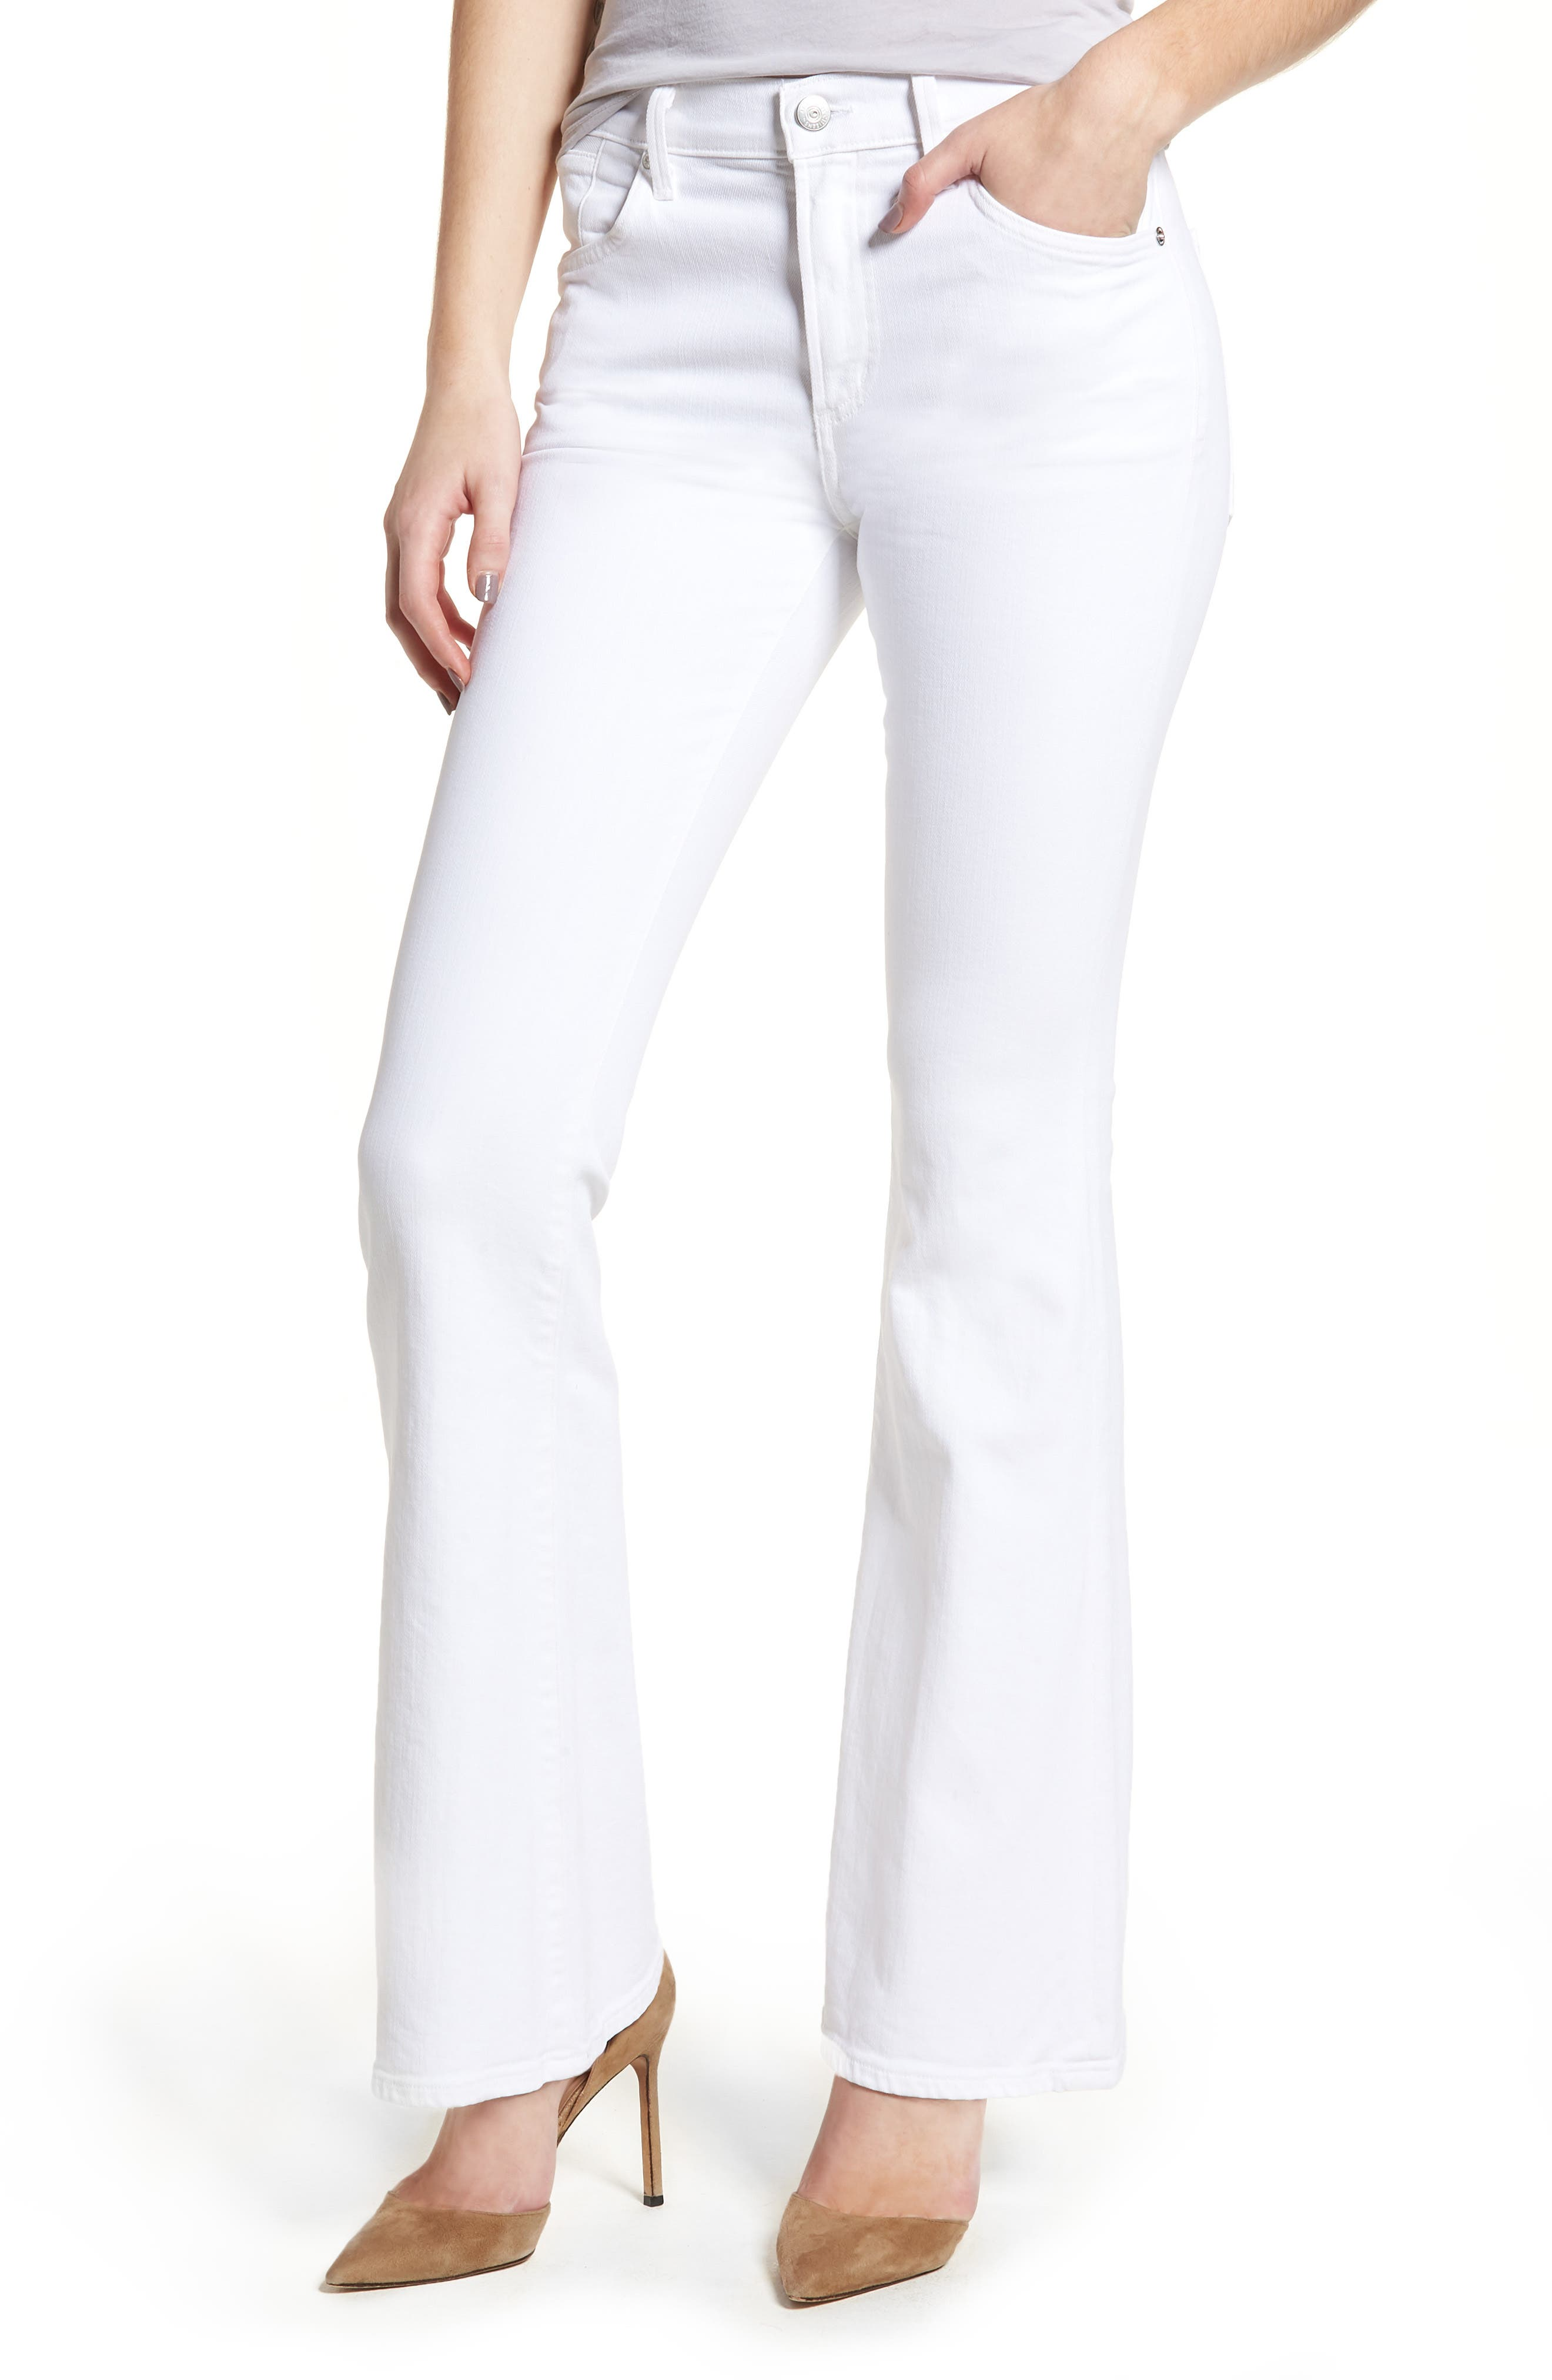 Fleetwood Flare Jeans,                             Main thumbnail 1, color,                             104